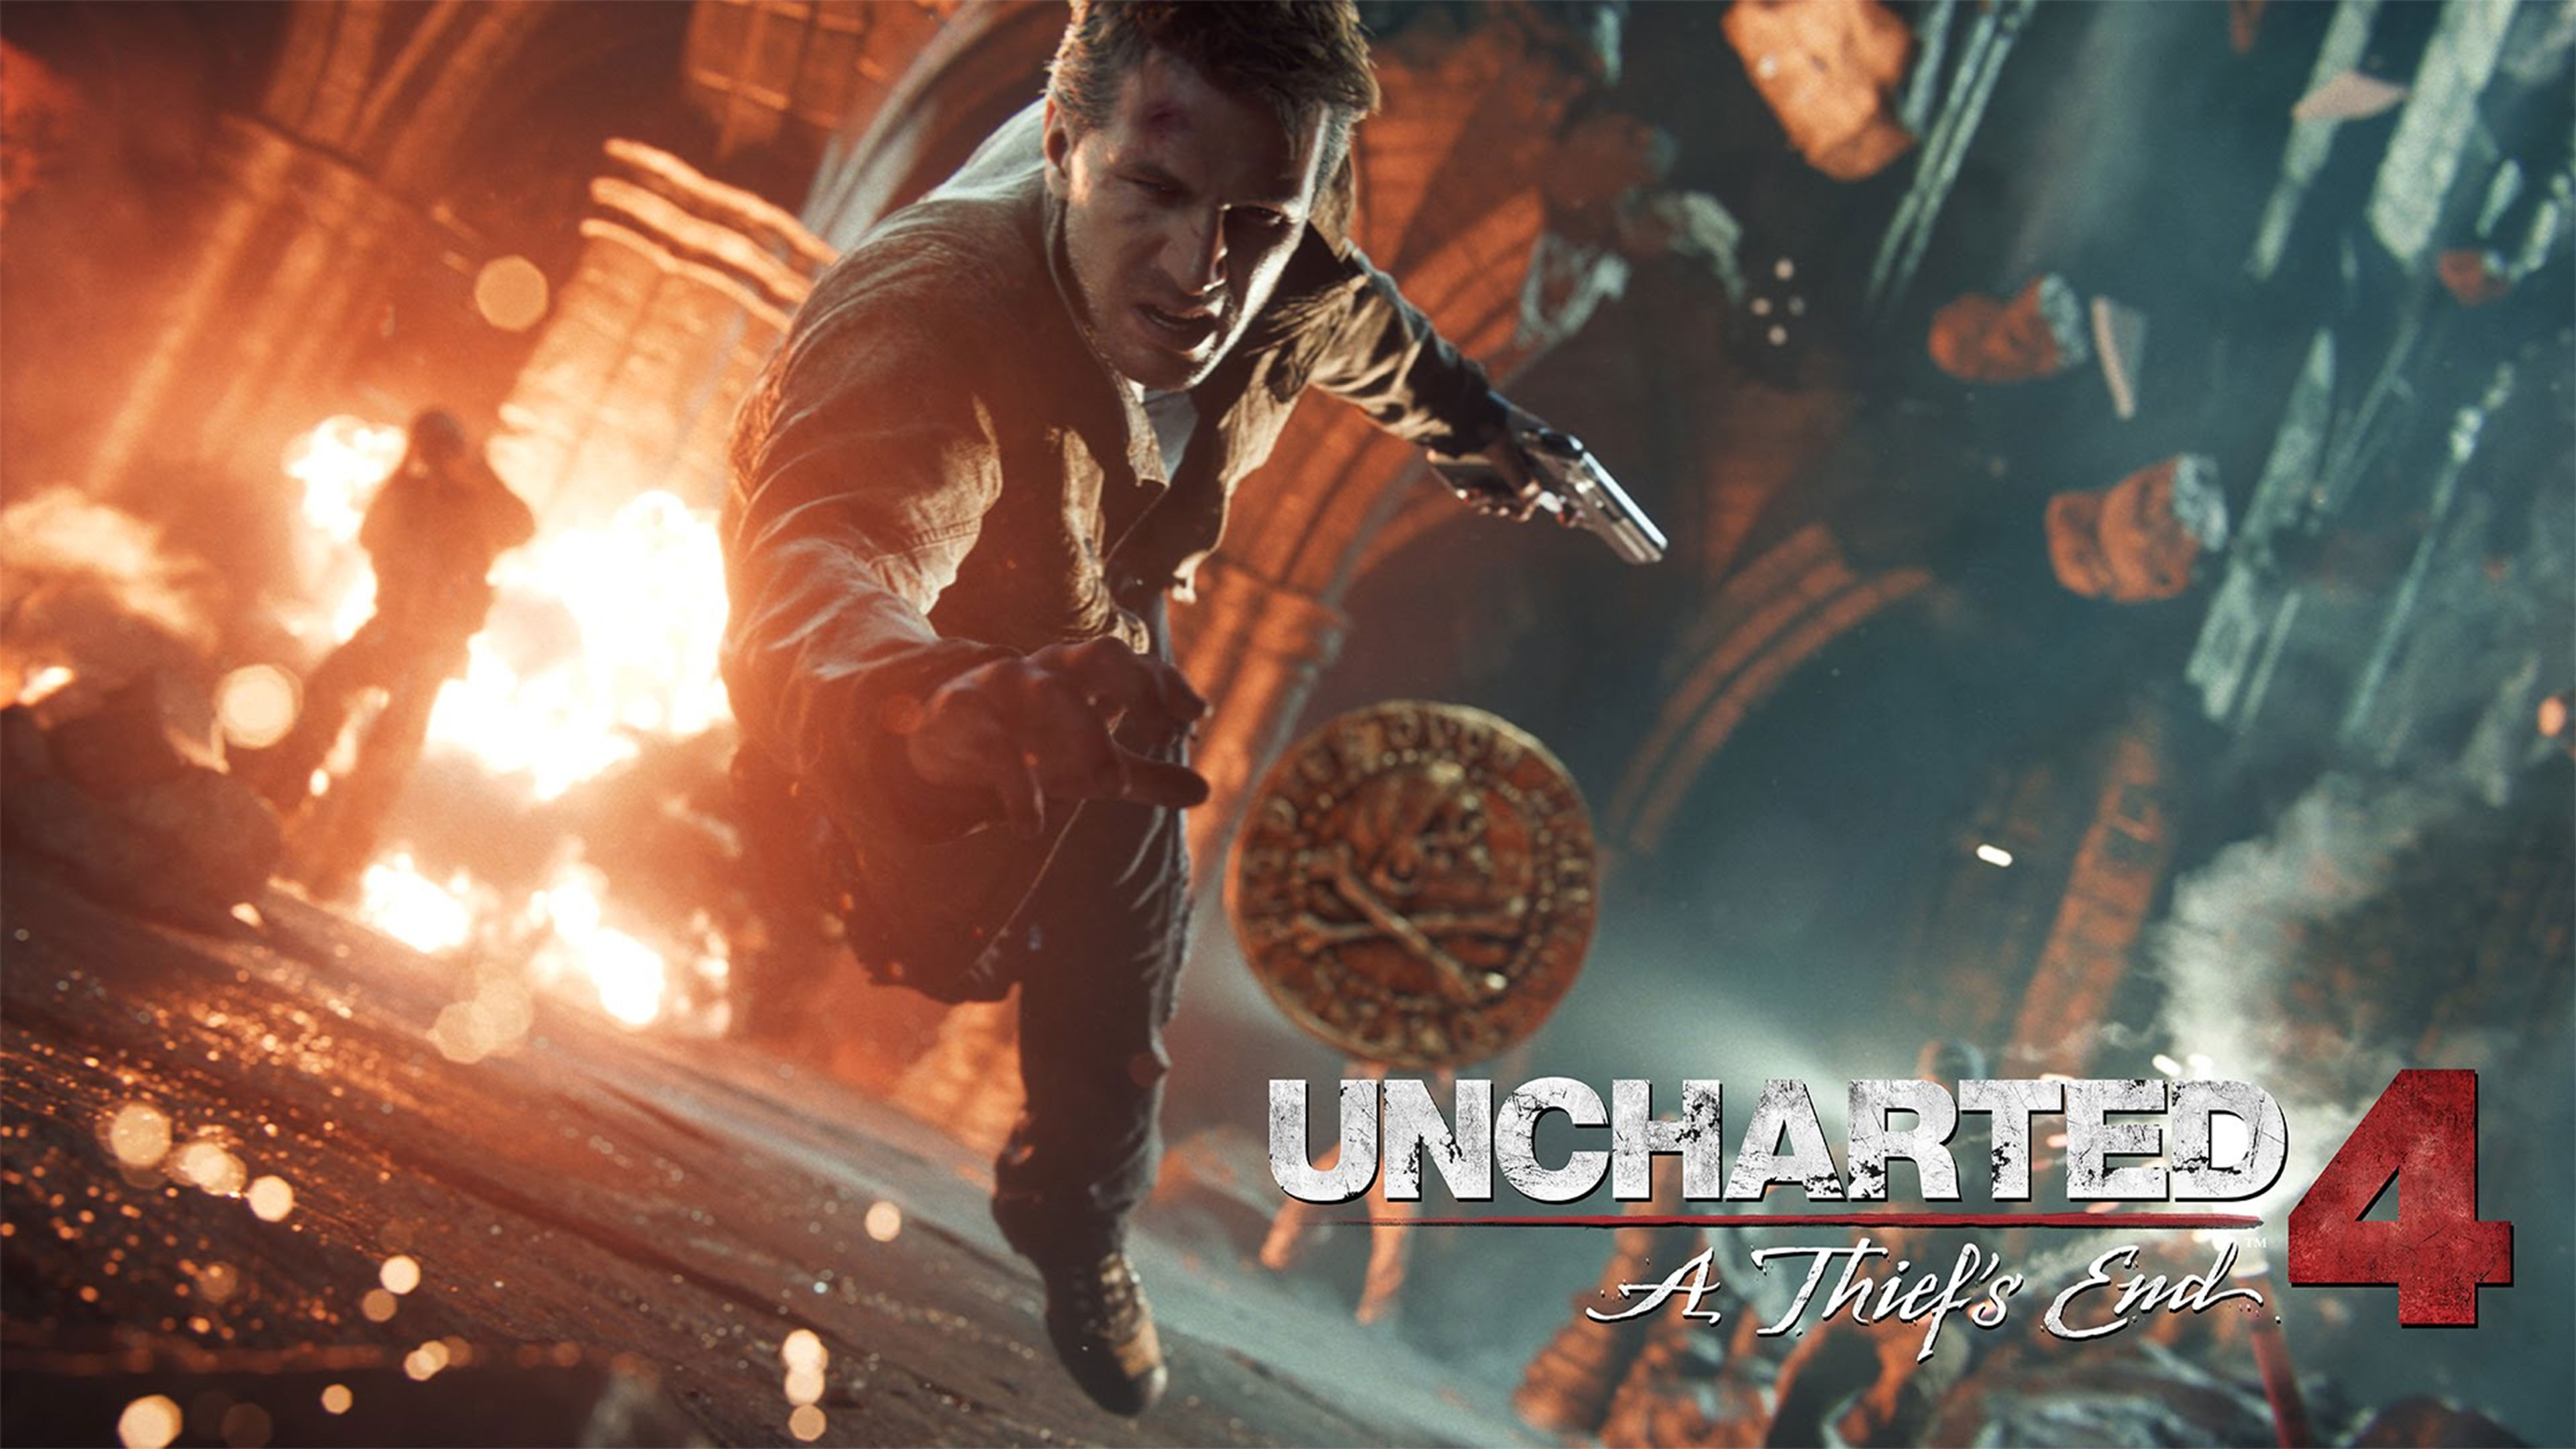 Uncharted 4 A Thiefs End 4K Wallpaper